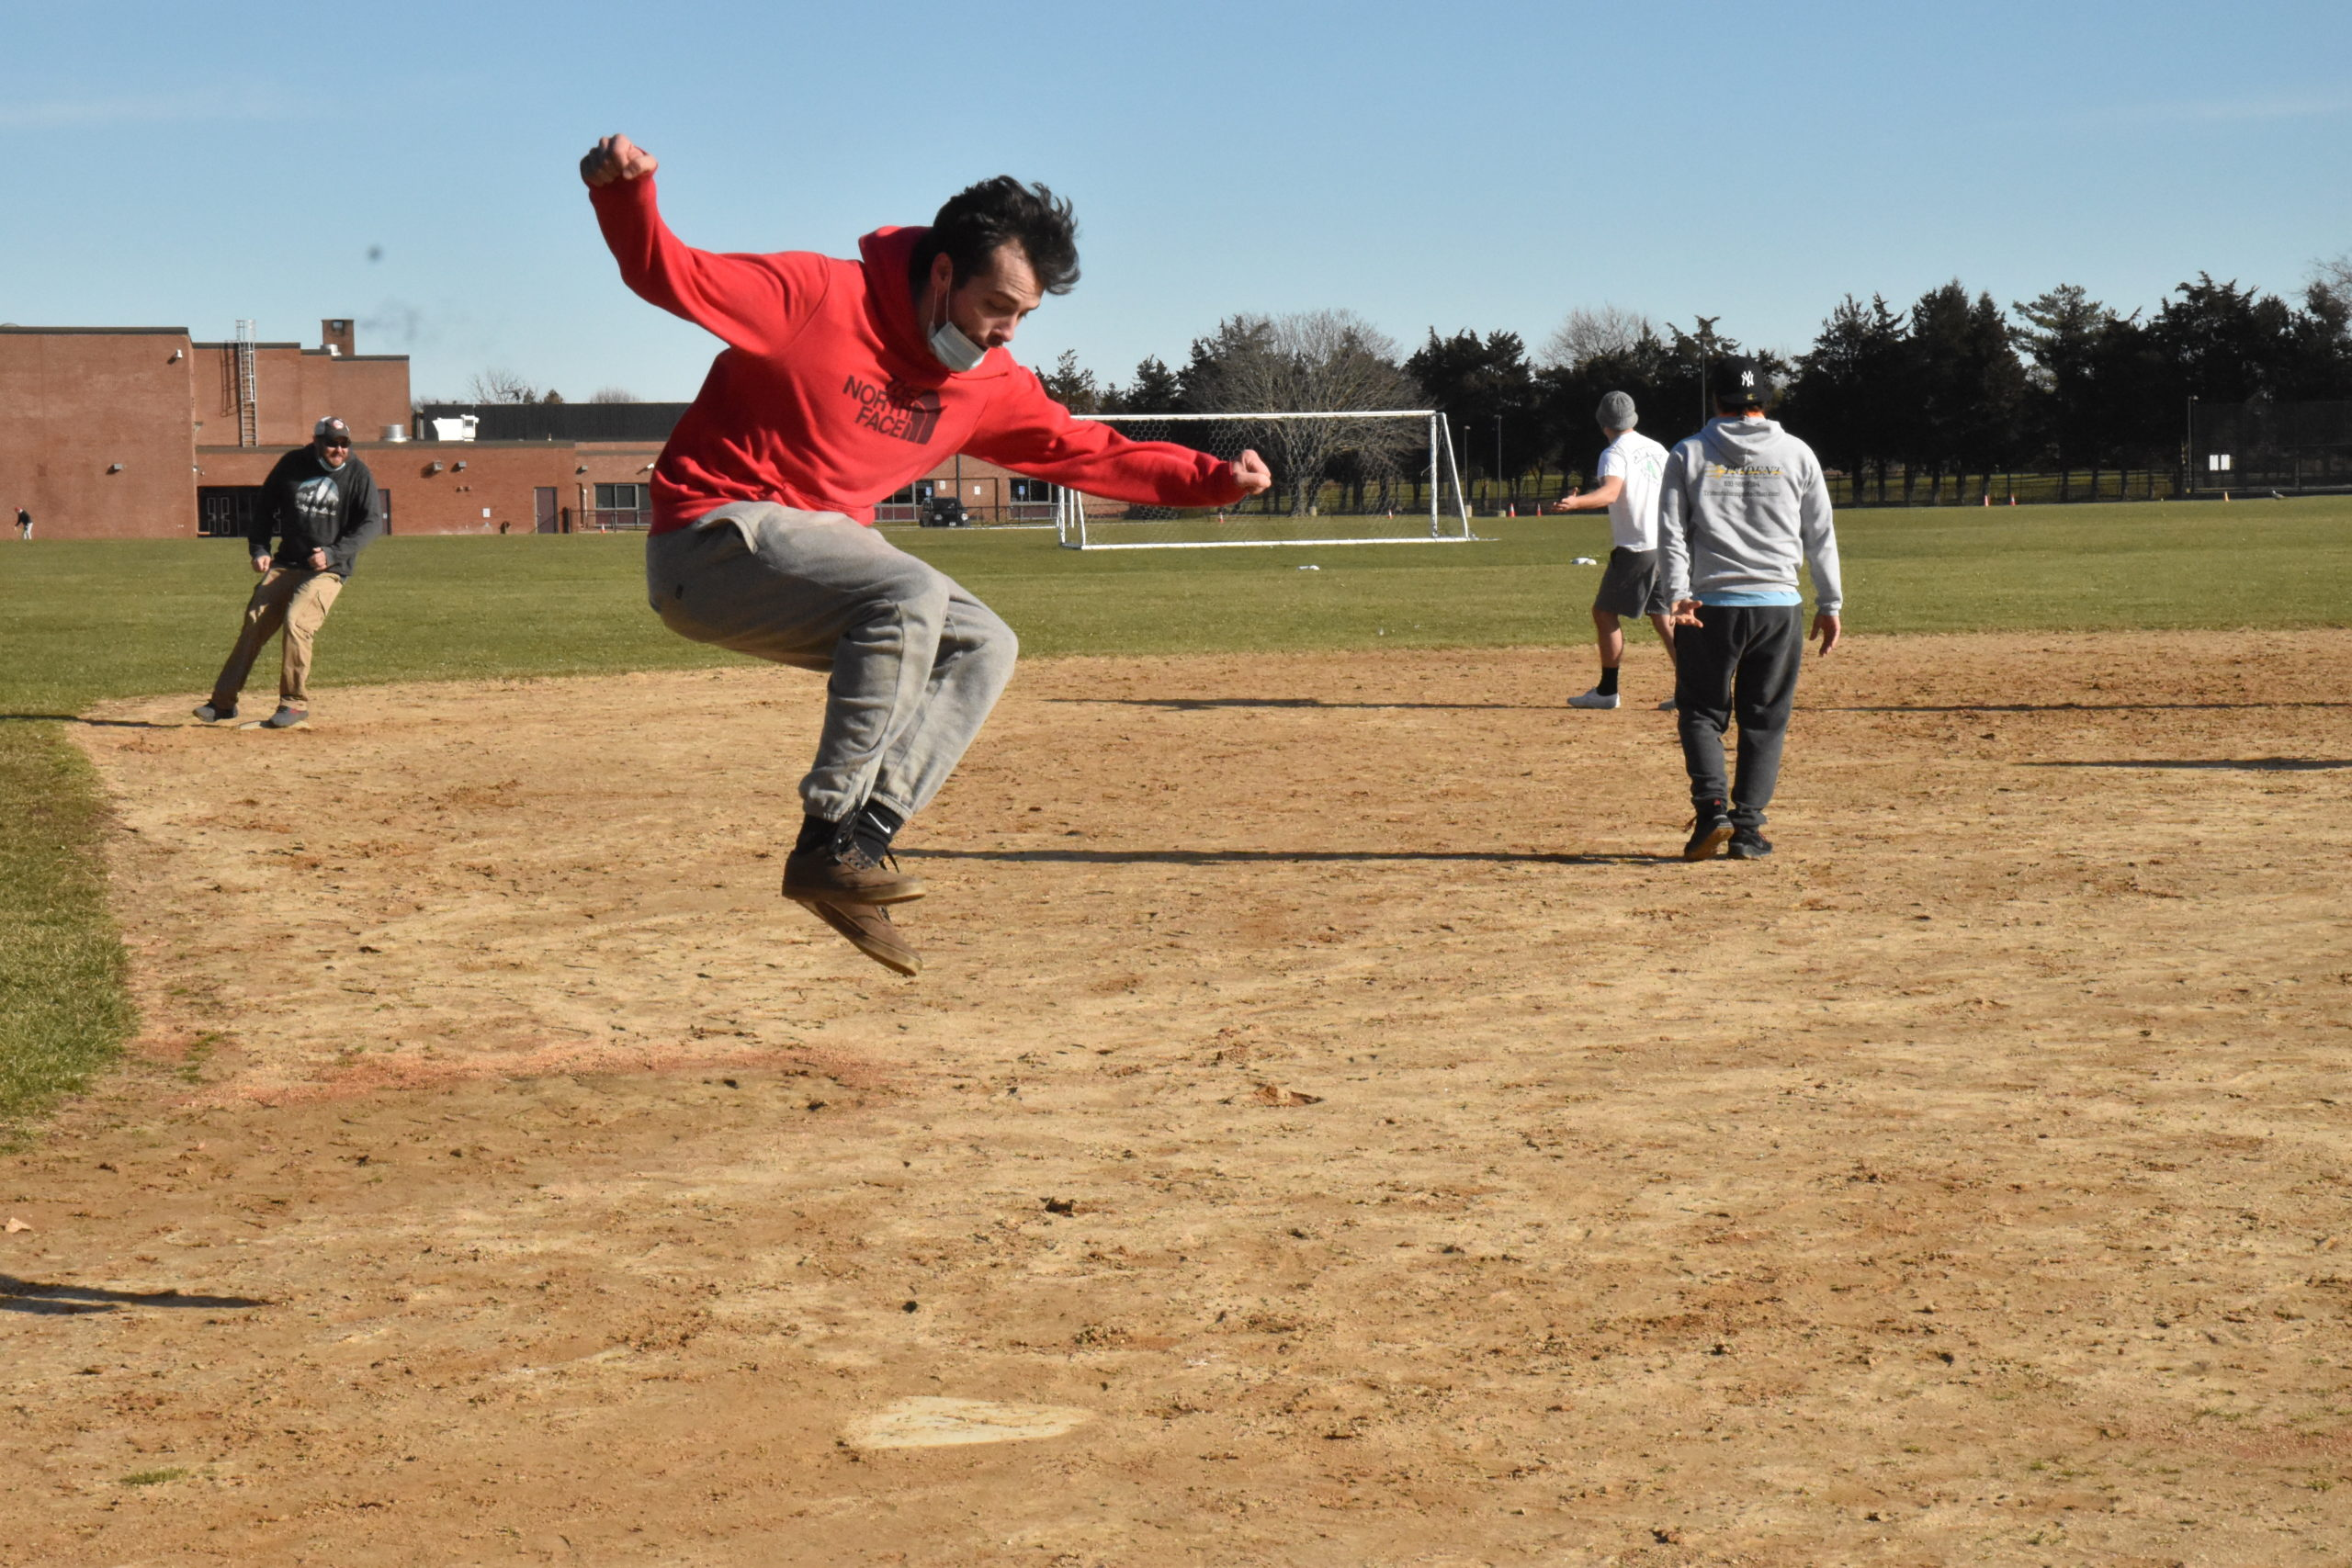 Steve Swiderski scores a run with an exclamation point in a pickup kickball game at Southampton Intermediate School on Sunday. STEPHEN J. KOTZ